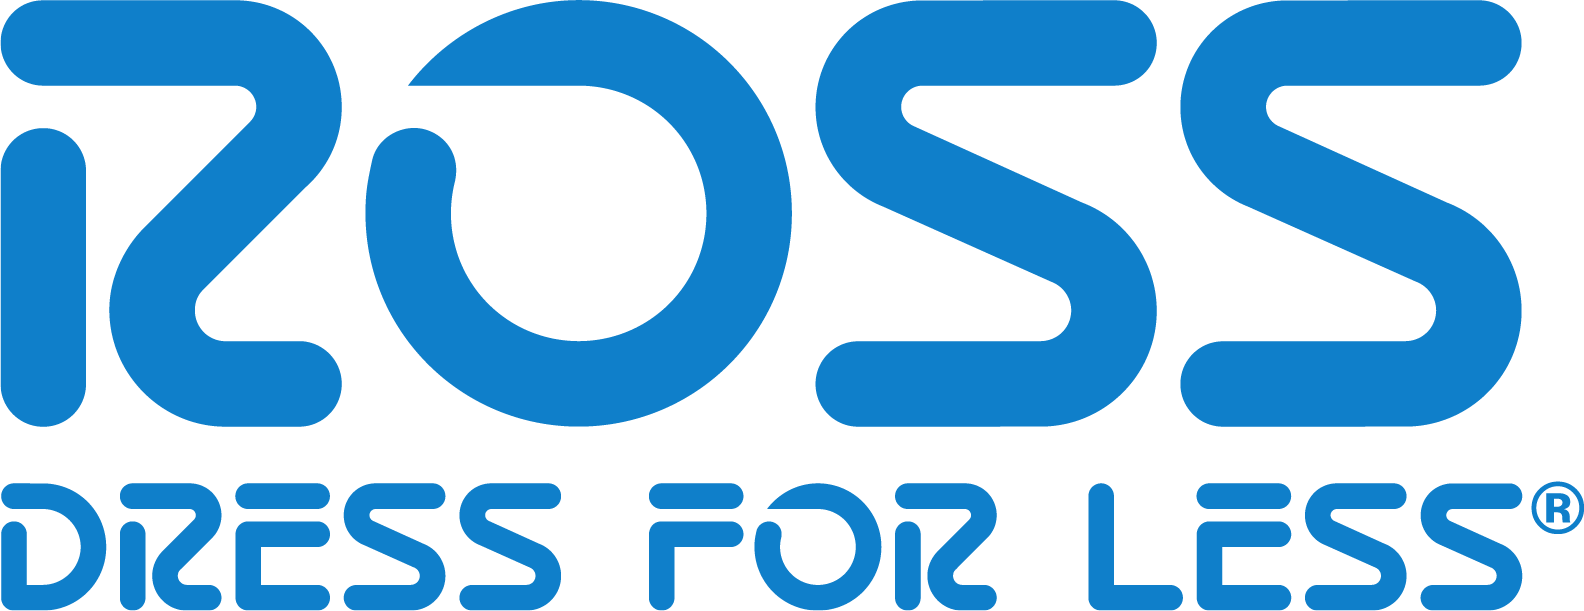 Ross Stores Logo png